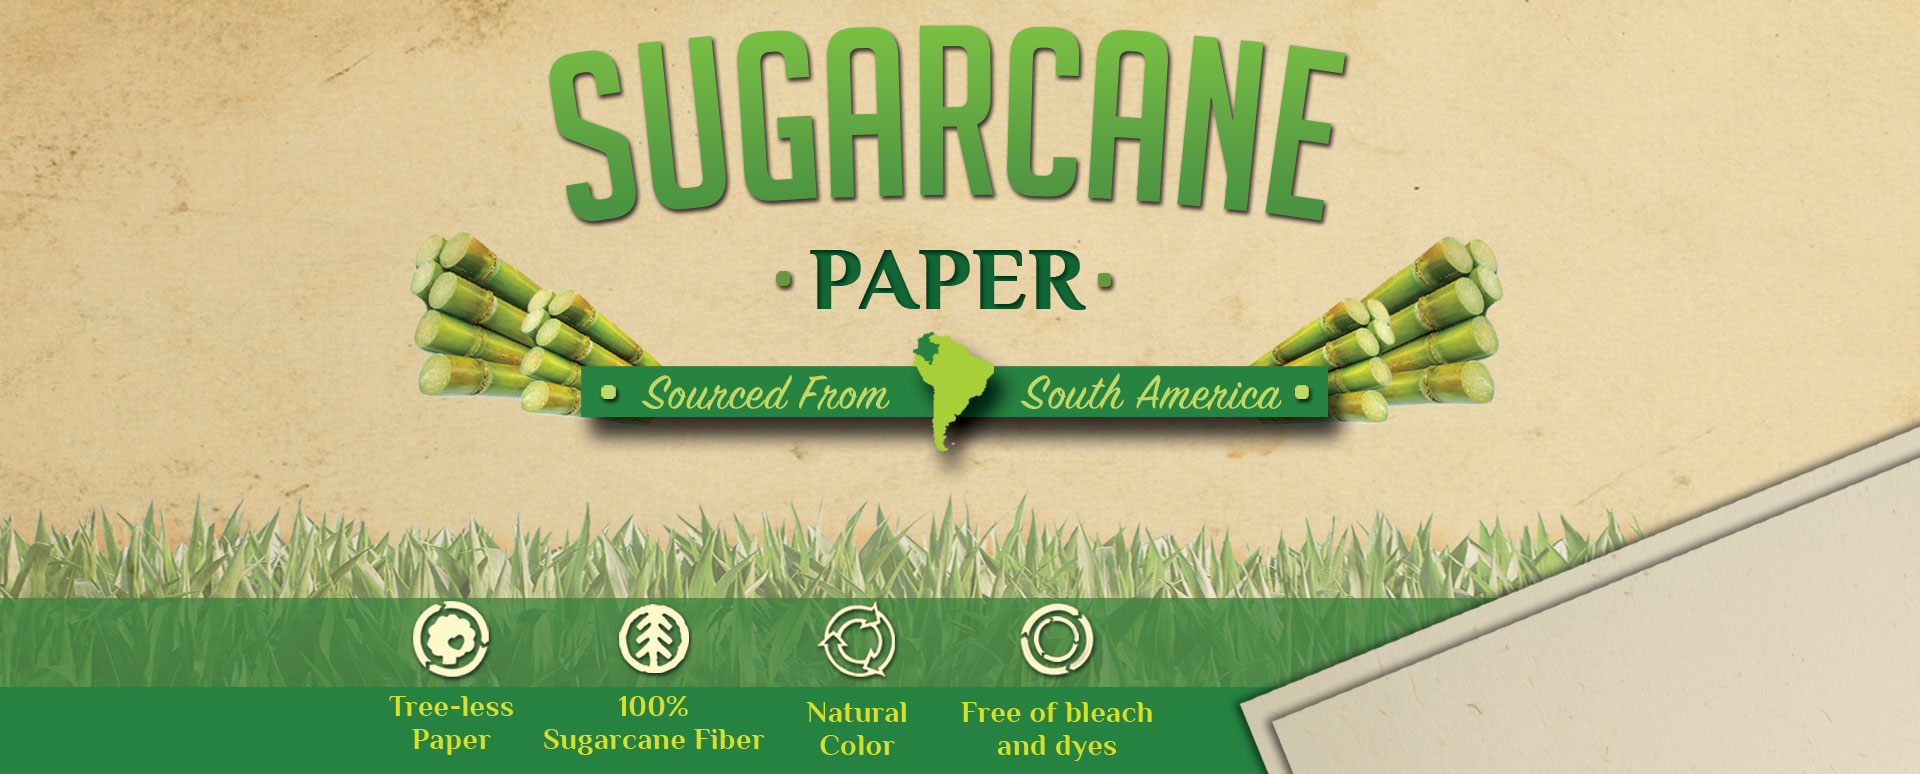 Eco friendly printing downtown los angeles indie printing check out our products slidebg2 learn about hemp indie printing cover eco friendly printing downtown la reheart Images